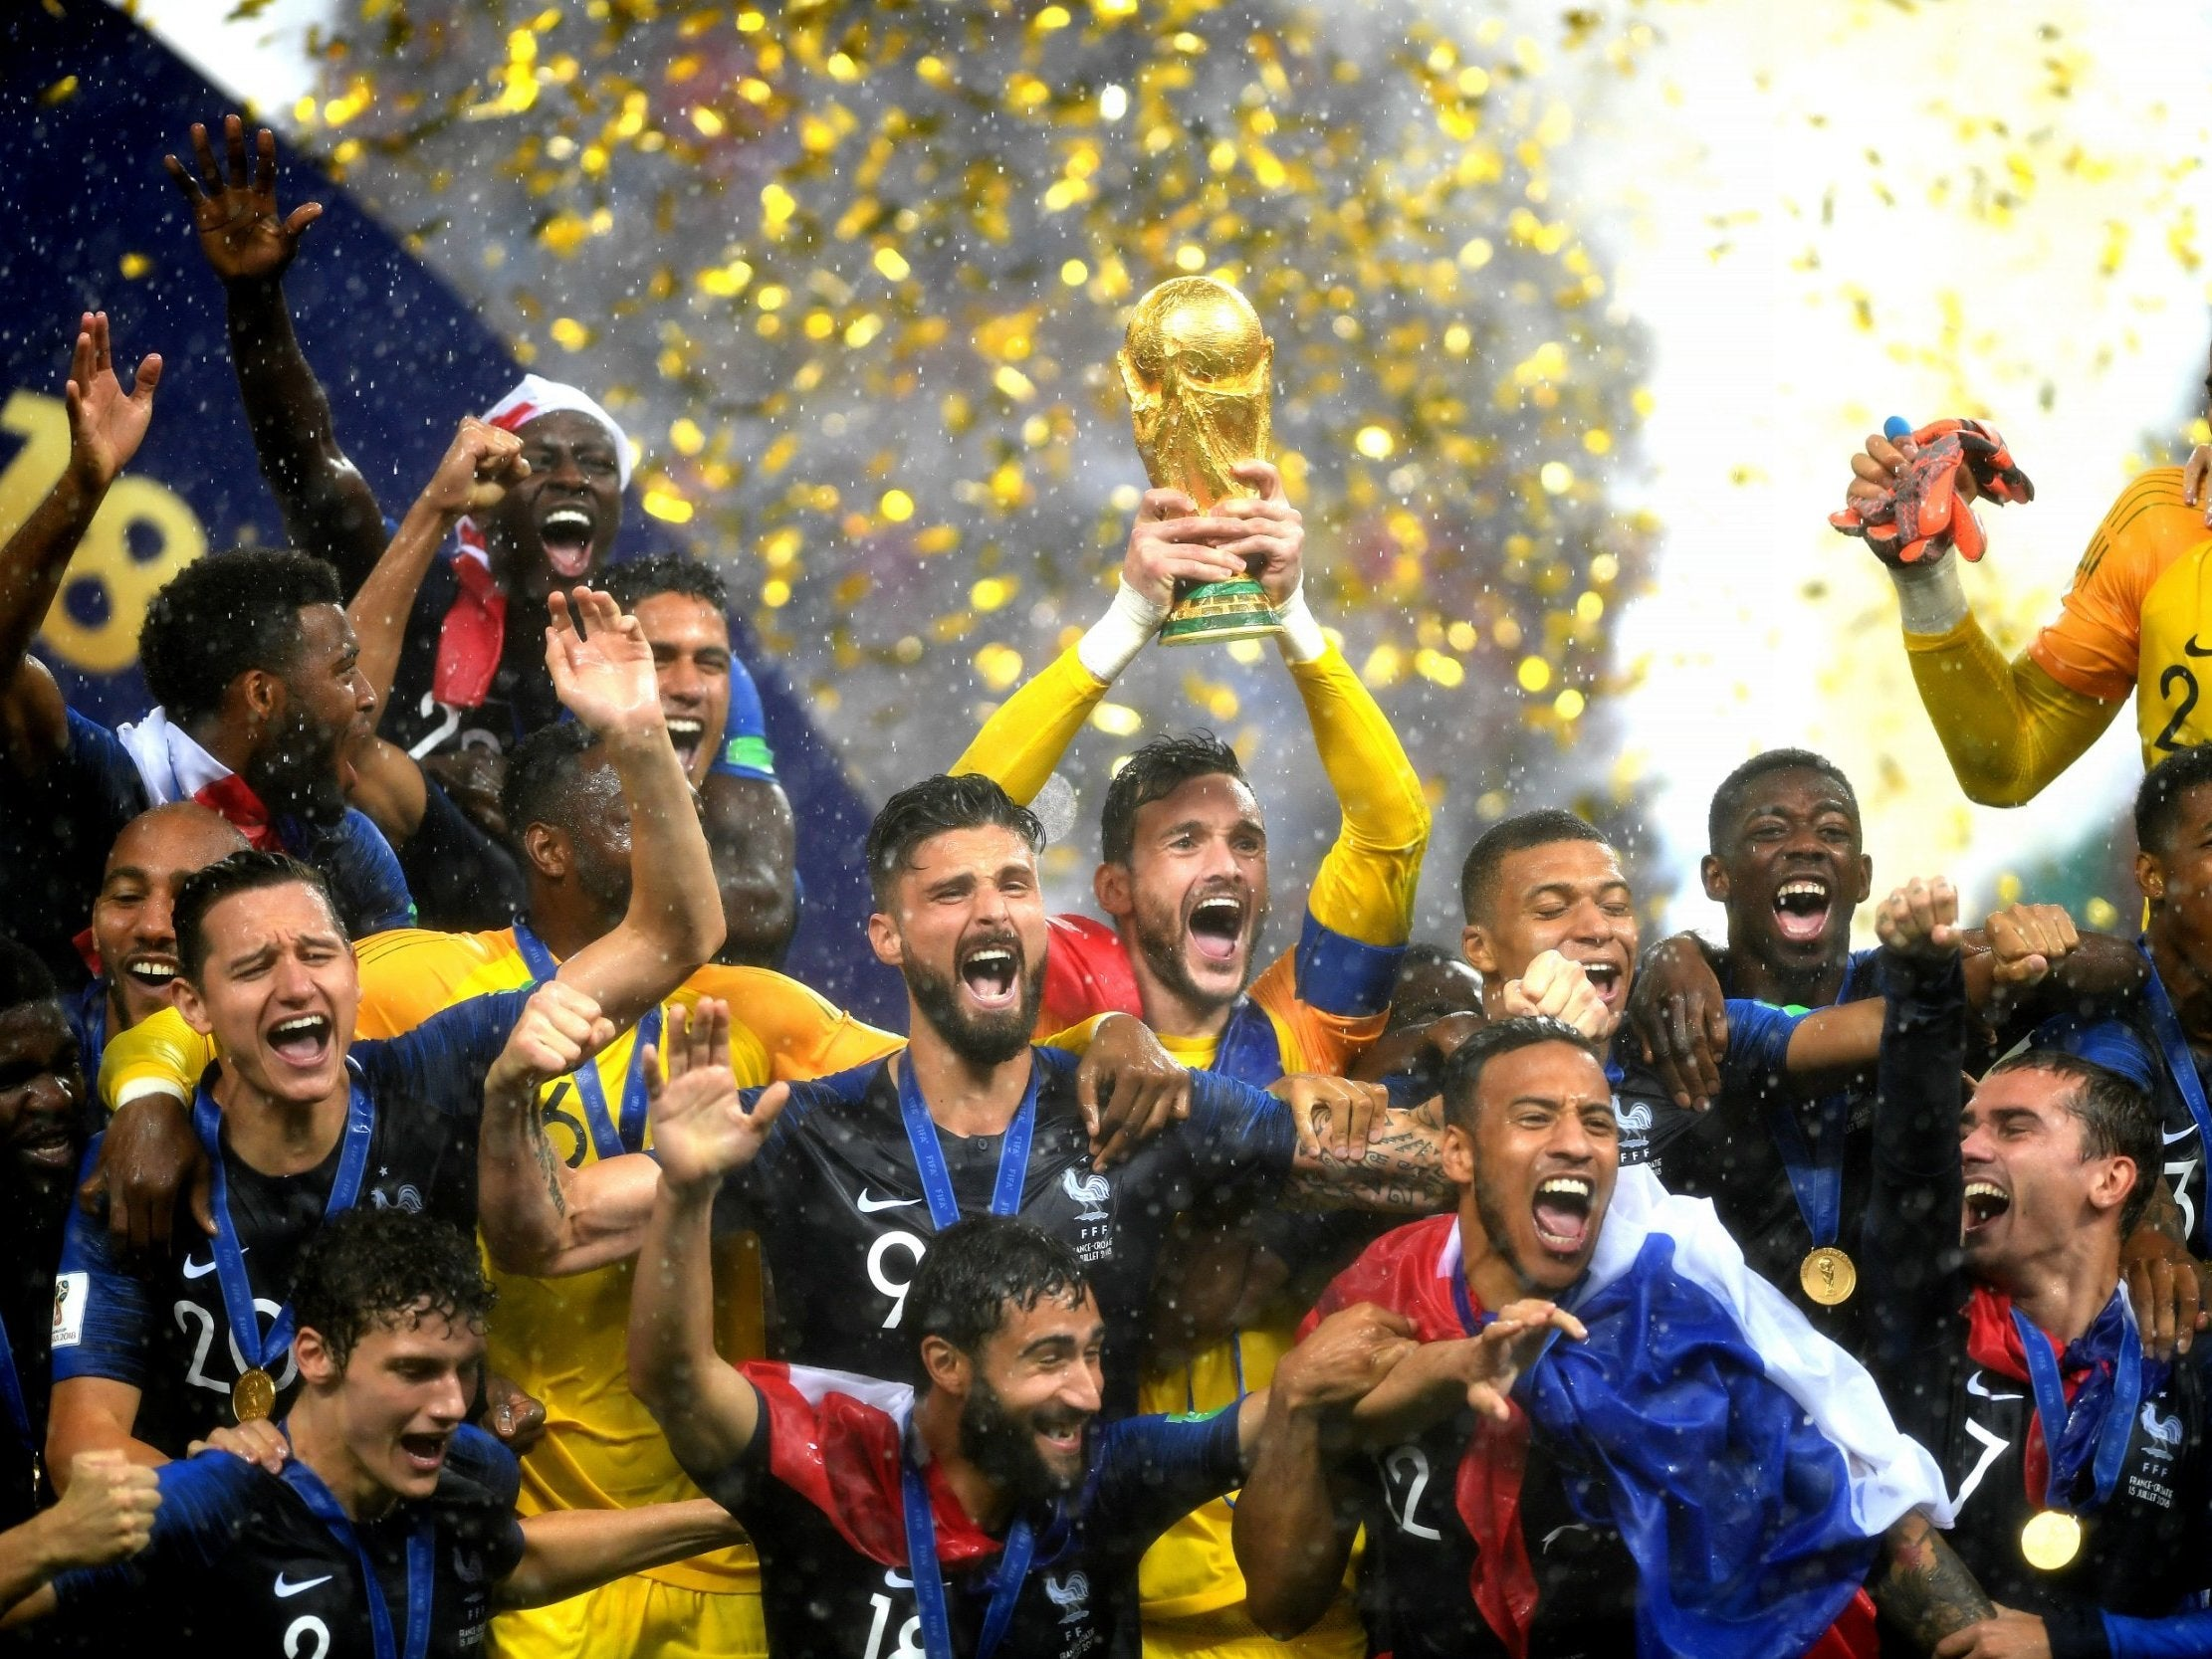 World Cup final 2018 LIVE France vs Croatia  France win the World Cup after  six-goal thriller with Croatia - as it happened  b0f2e86c016a7